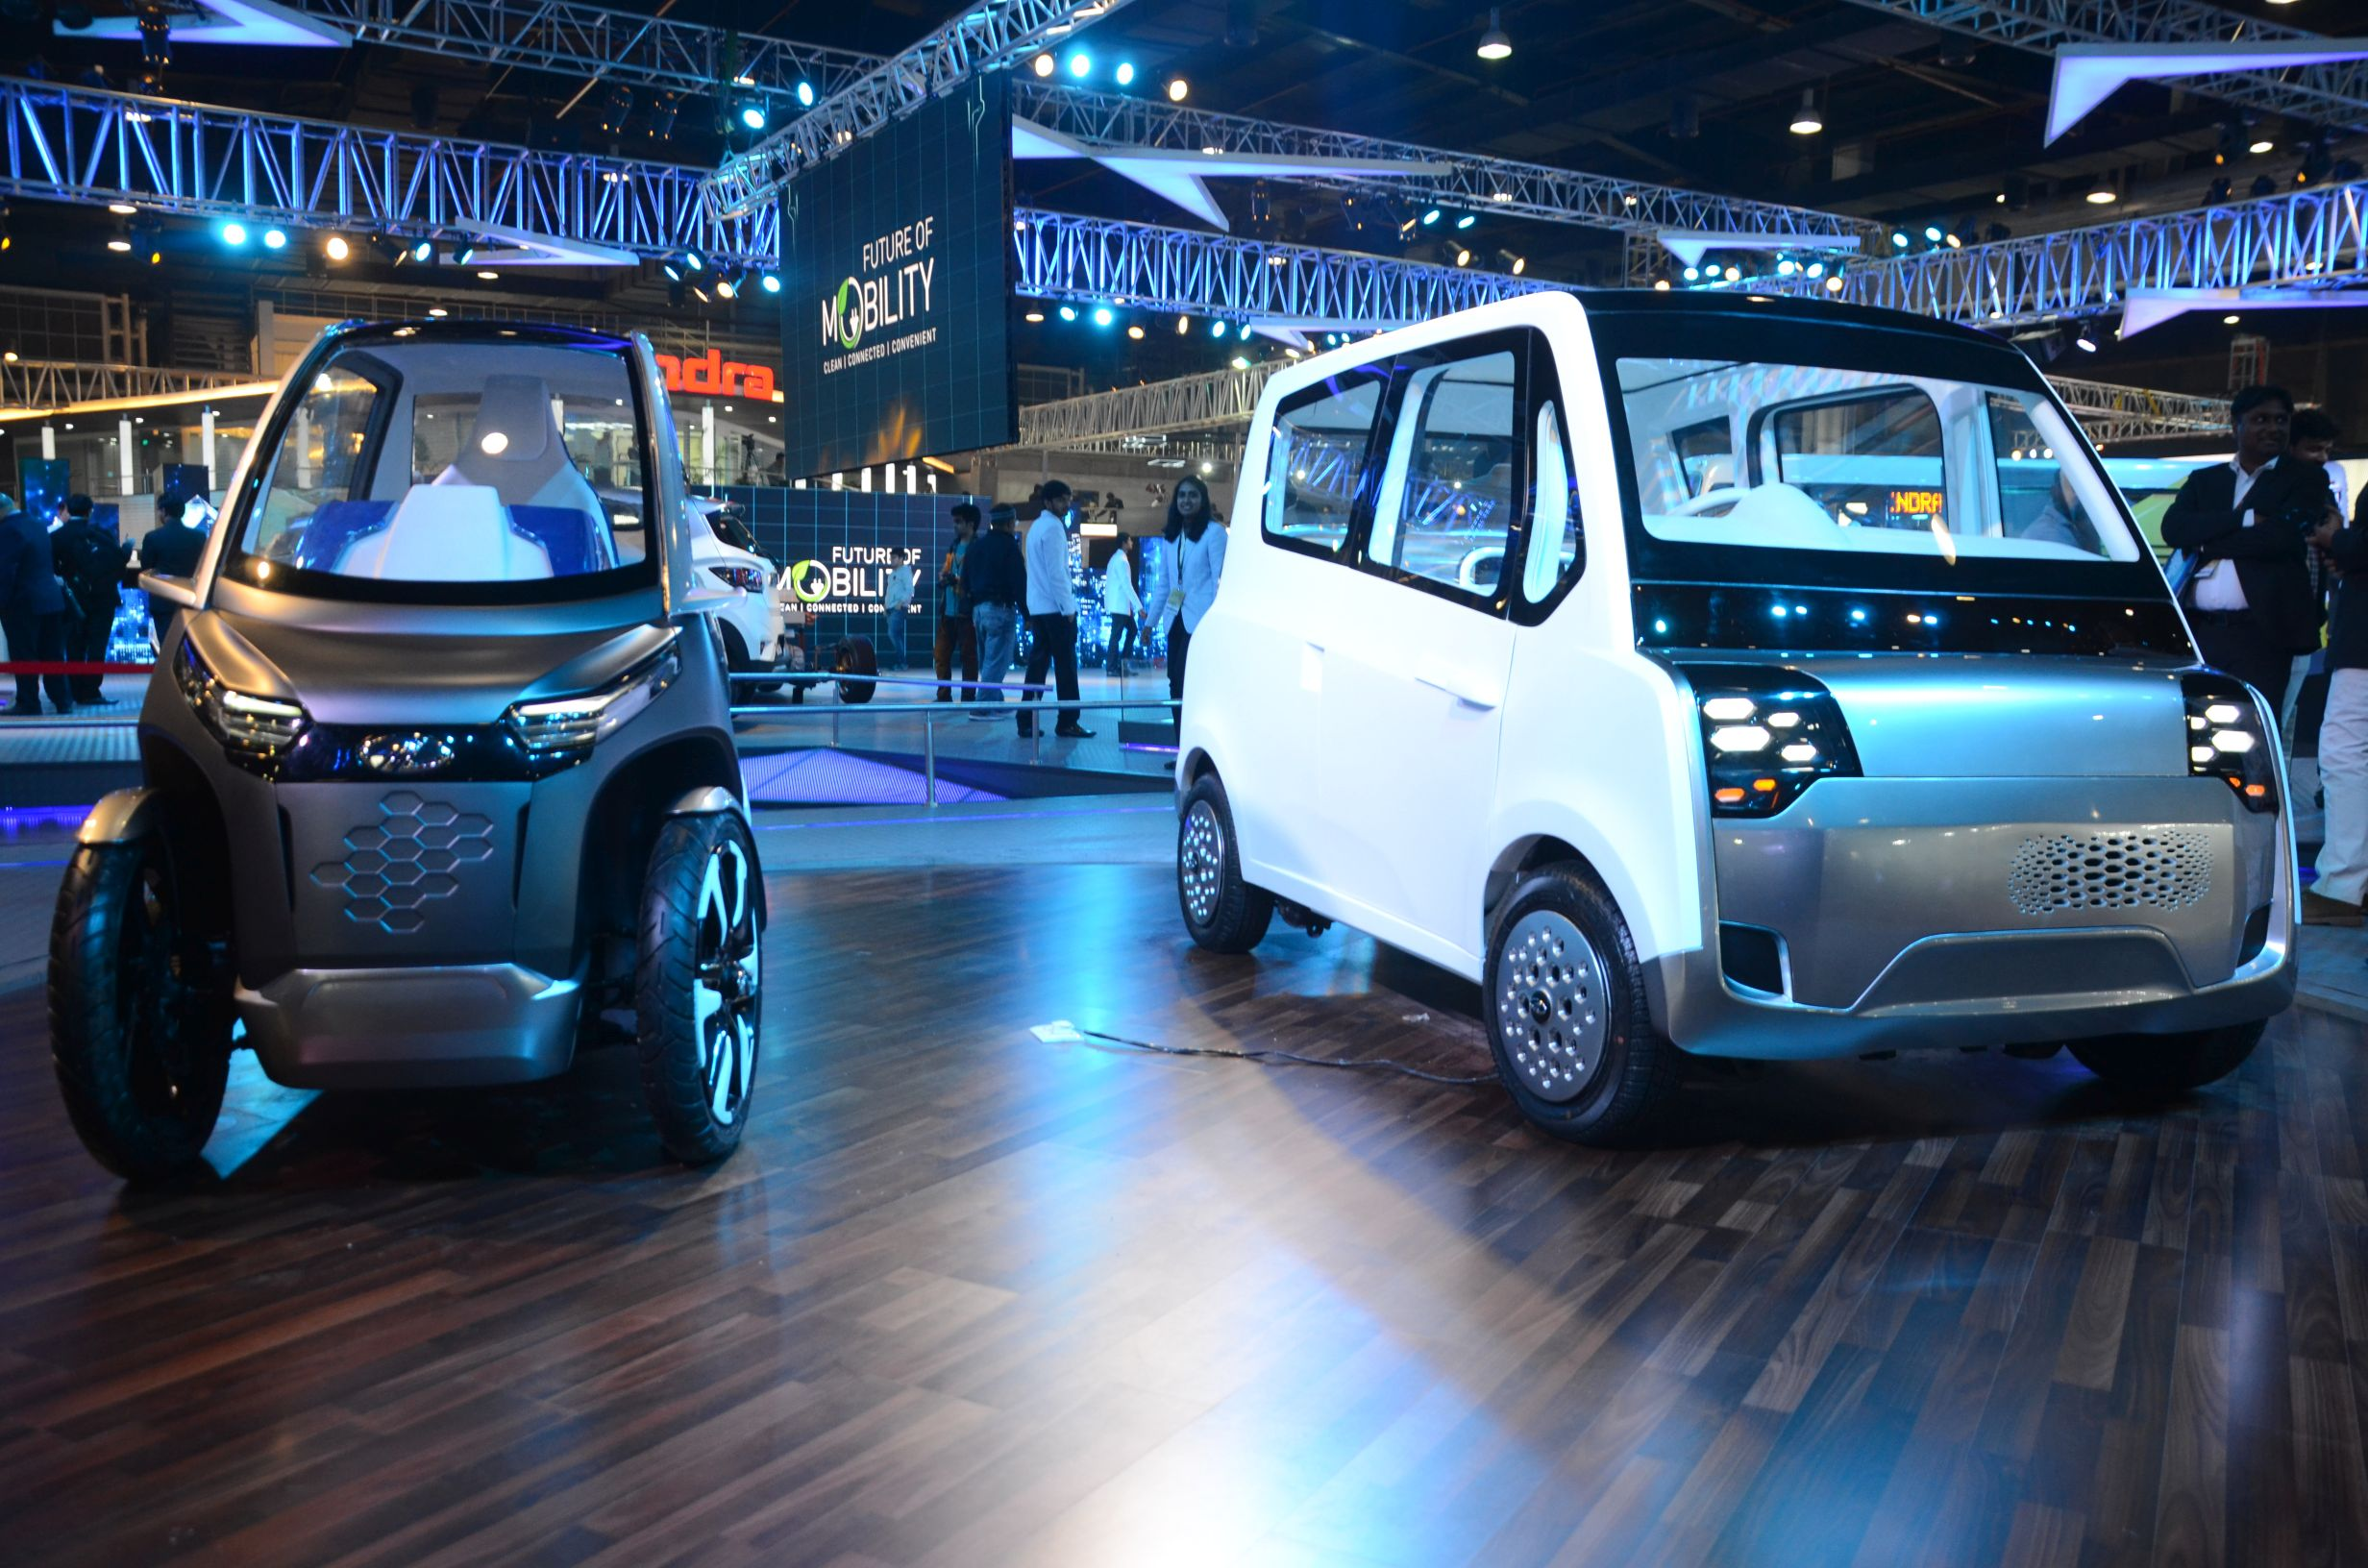 Mahindra Showcases The Future Of Mobility At Auto Expo